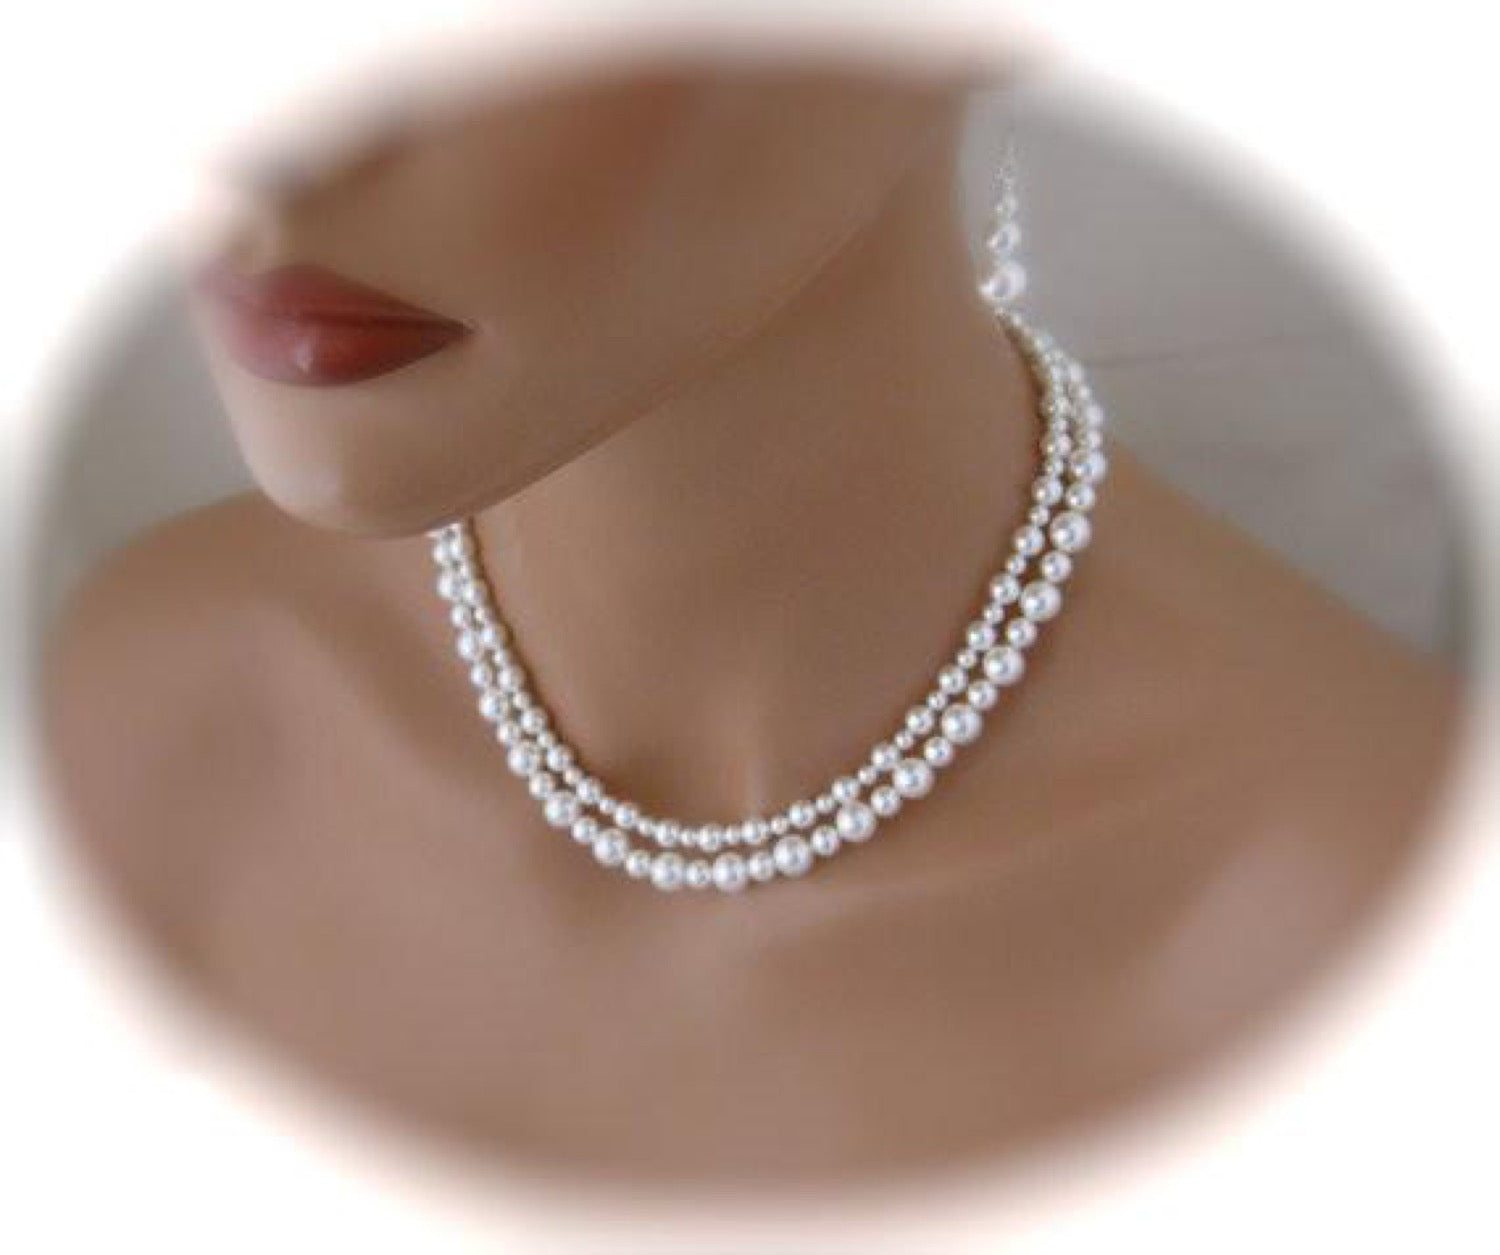 White Double Strand Pearl Necklace Bridal Earrings Wedding Jewelry - Clairesbridal - 2